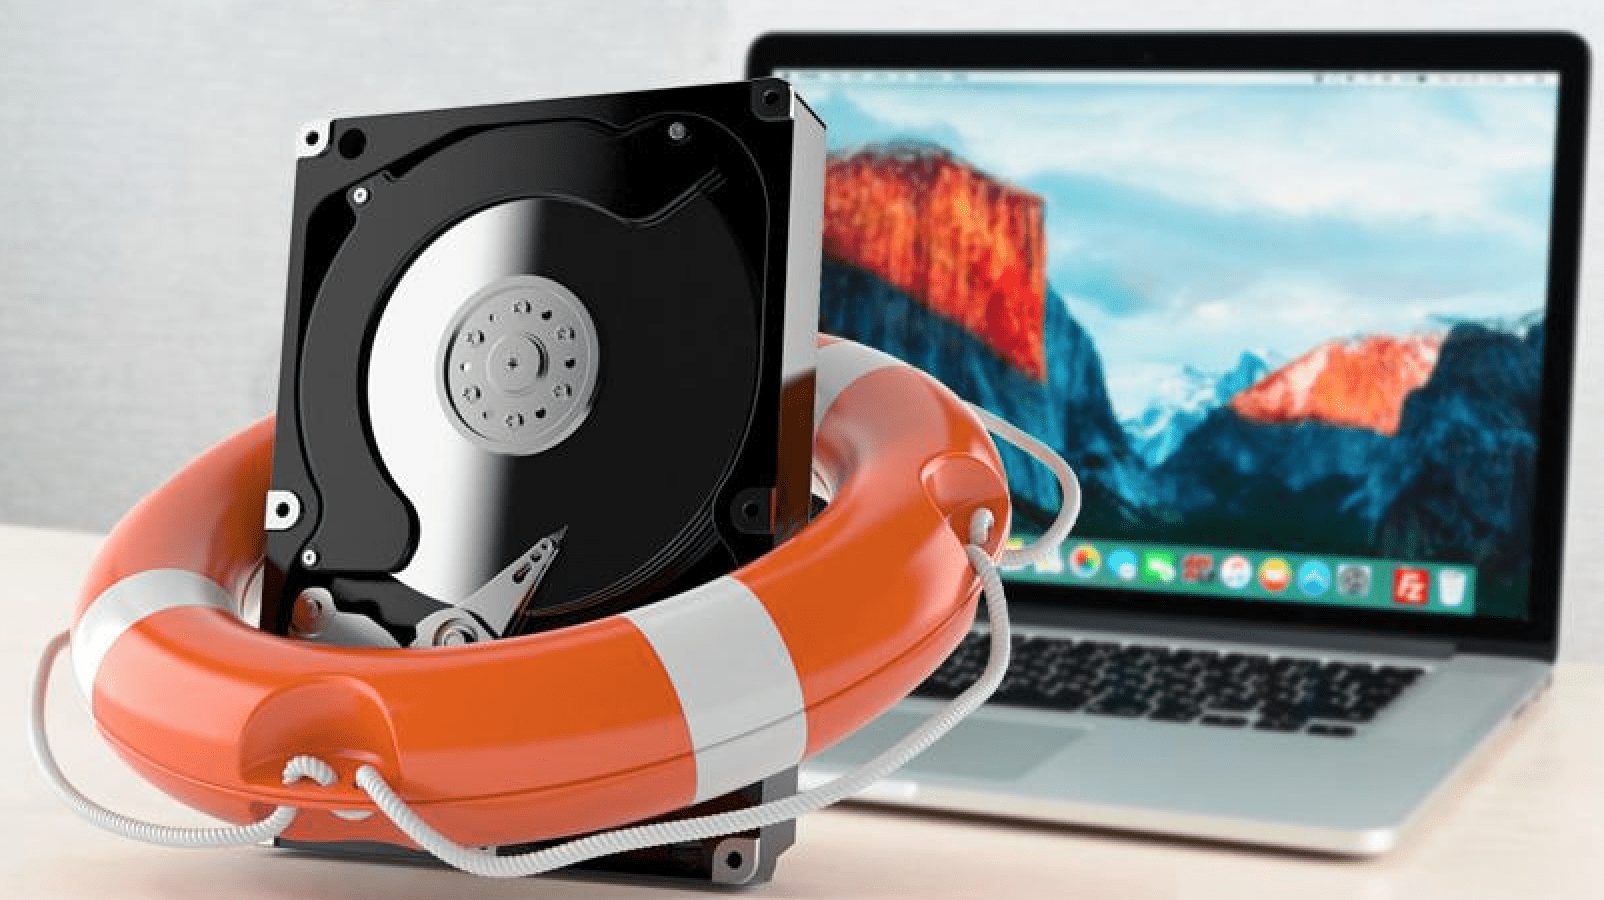 The Easiest Way To Recover Data From Your Hard Drive